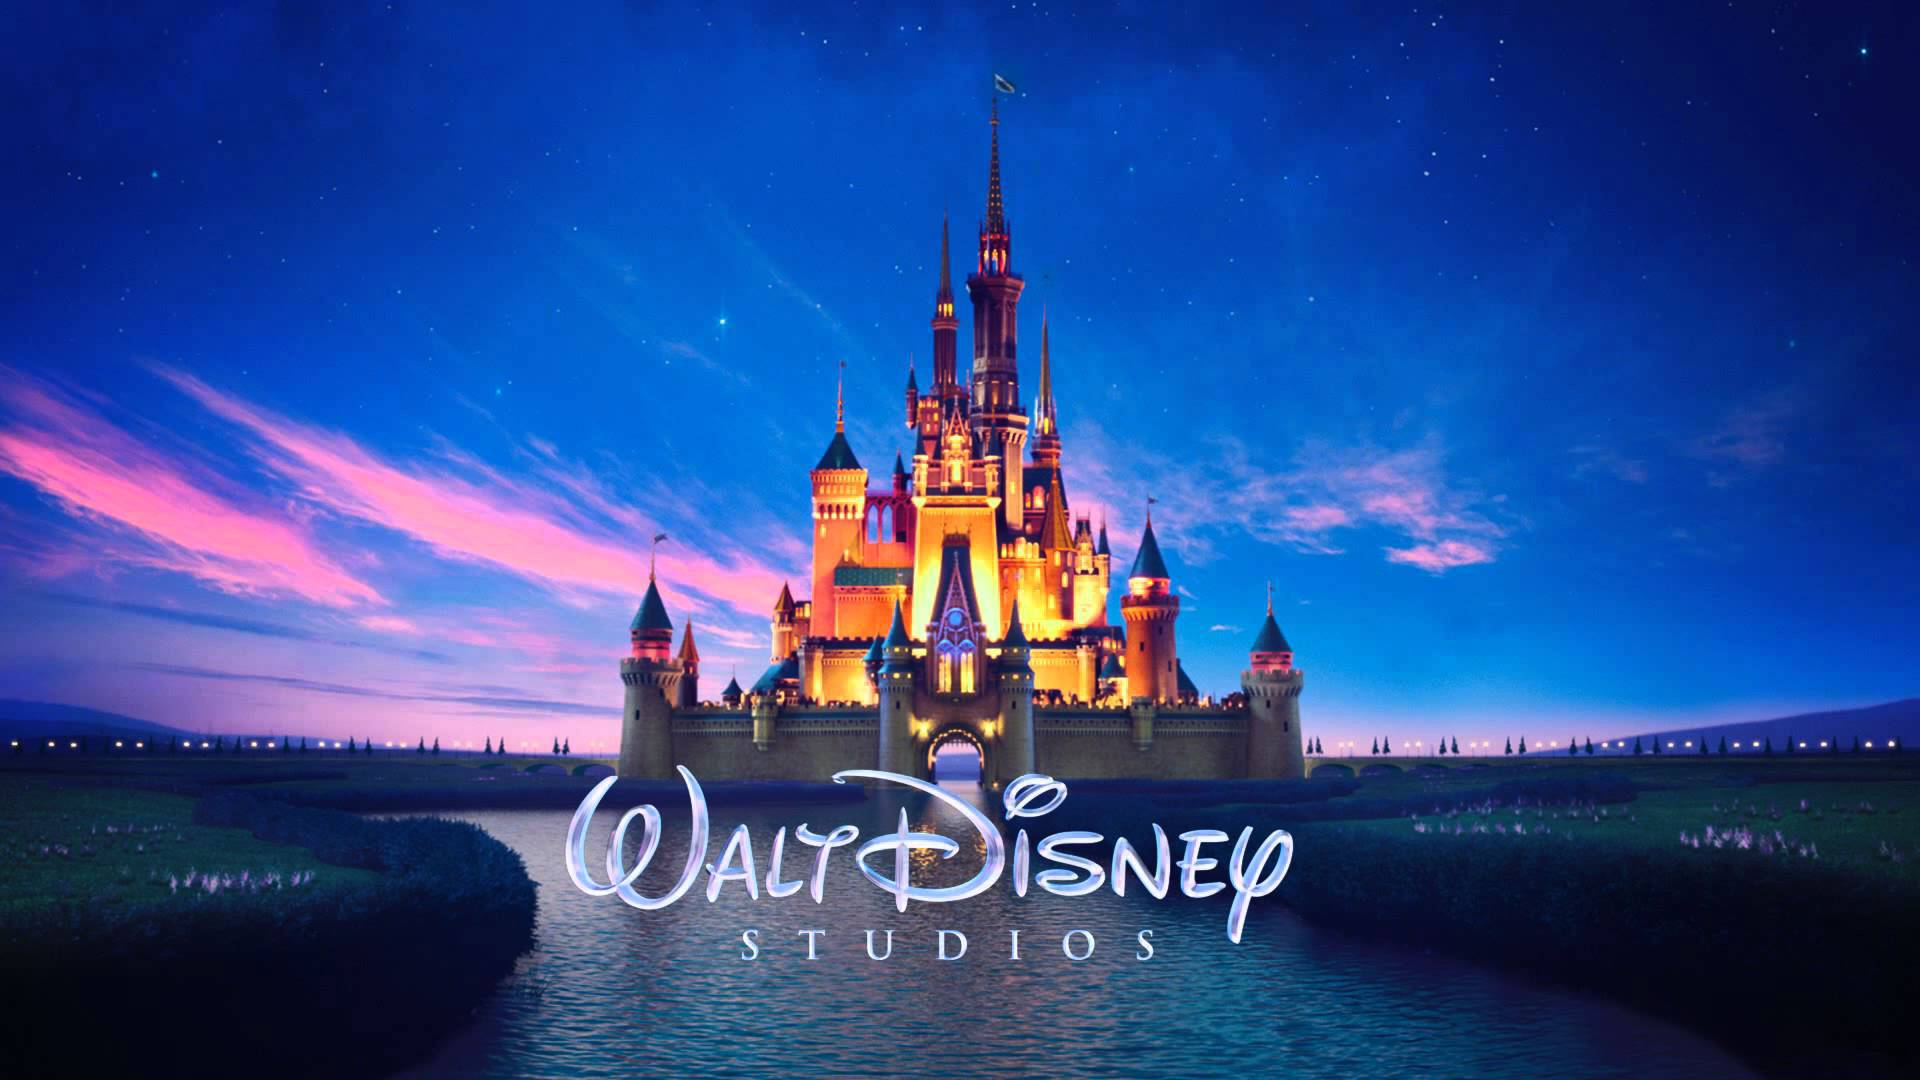 Upcoming Disney Movies That Will Knock Your Socks Off